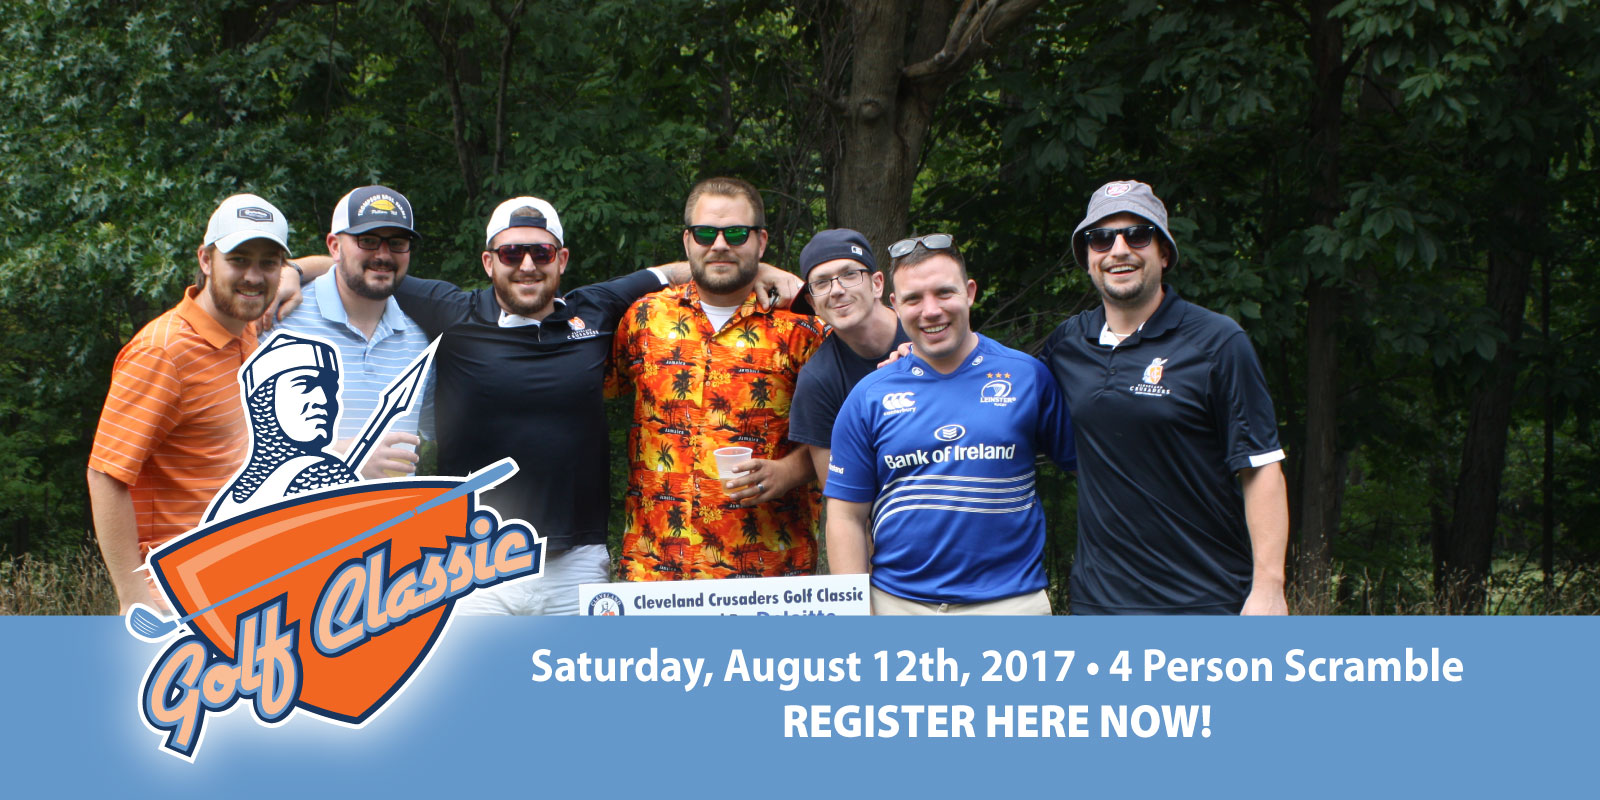 Cleveland Crusaders Golf Classic Three – Saturday, August 12th, 2017